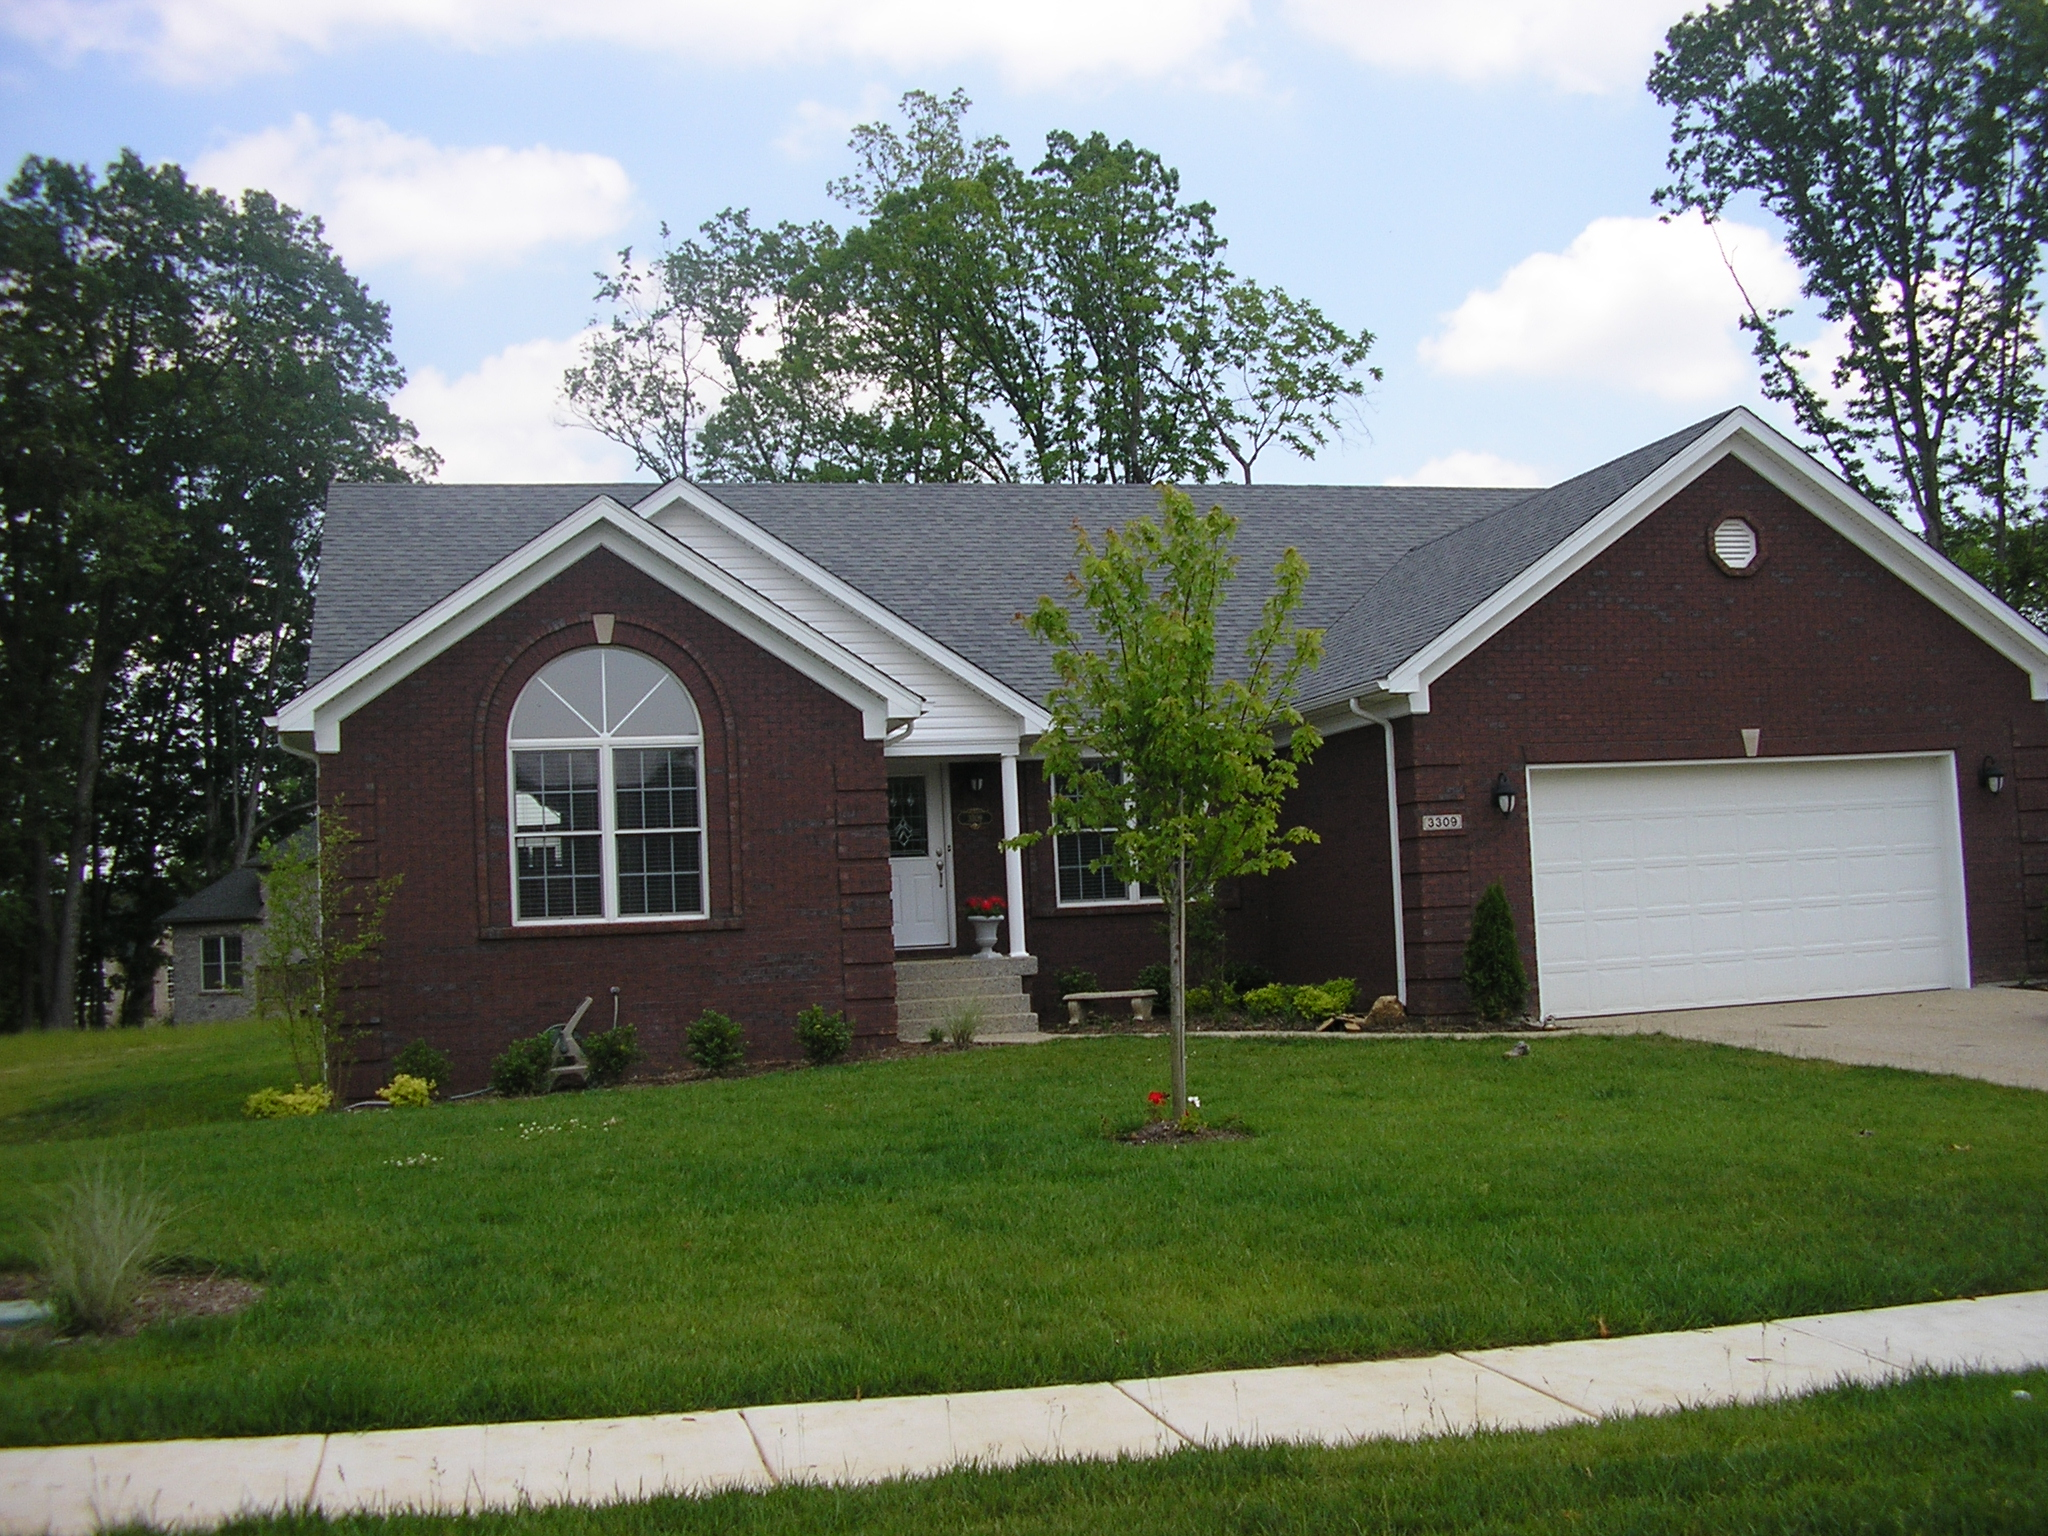 southern indiana home builder jeda homes llc